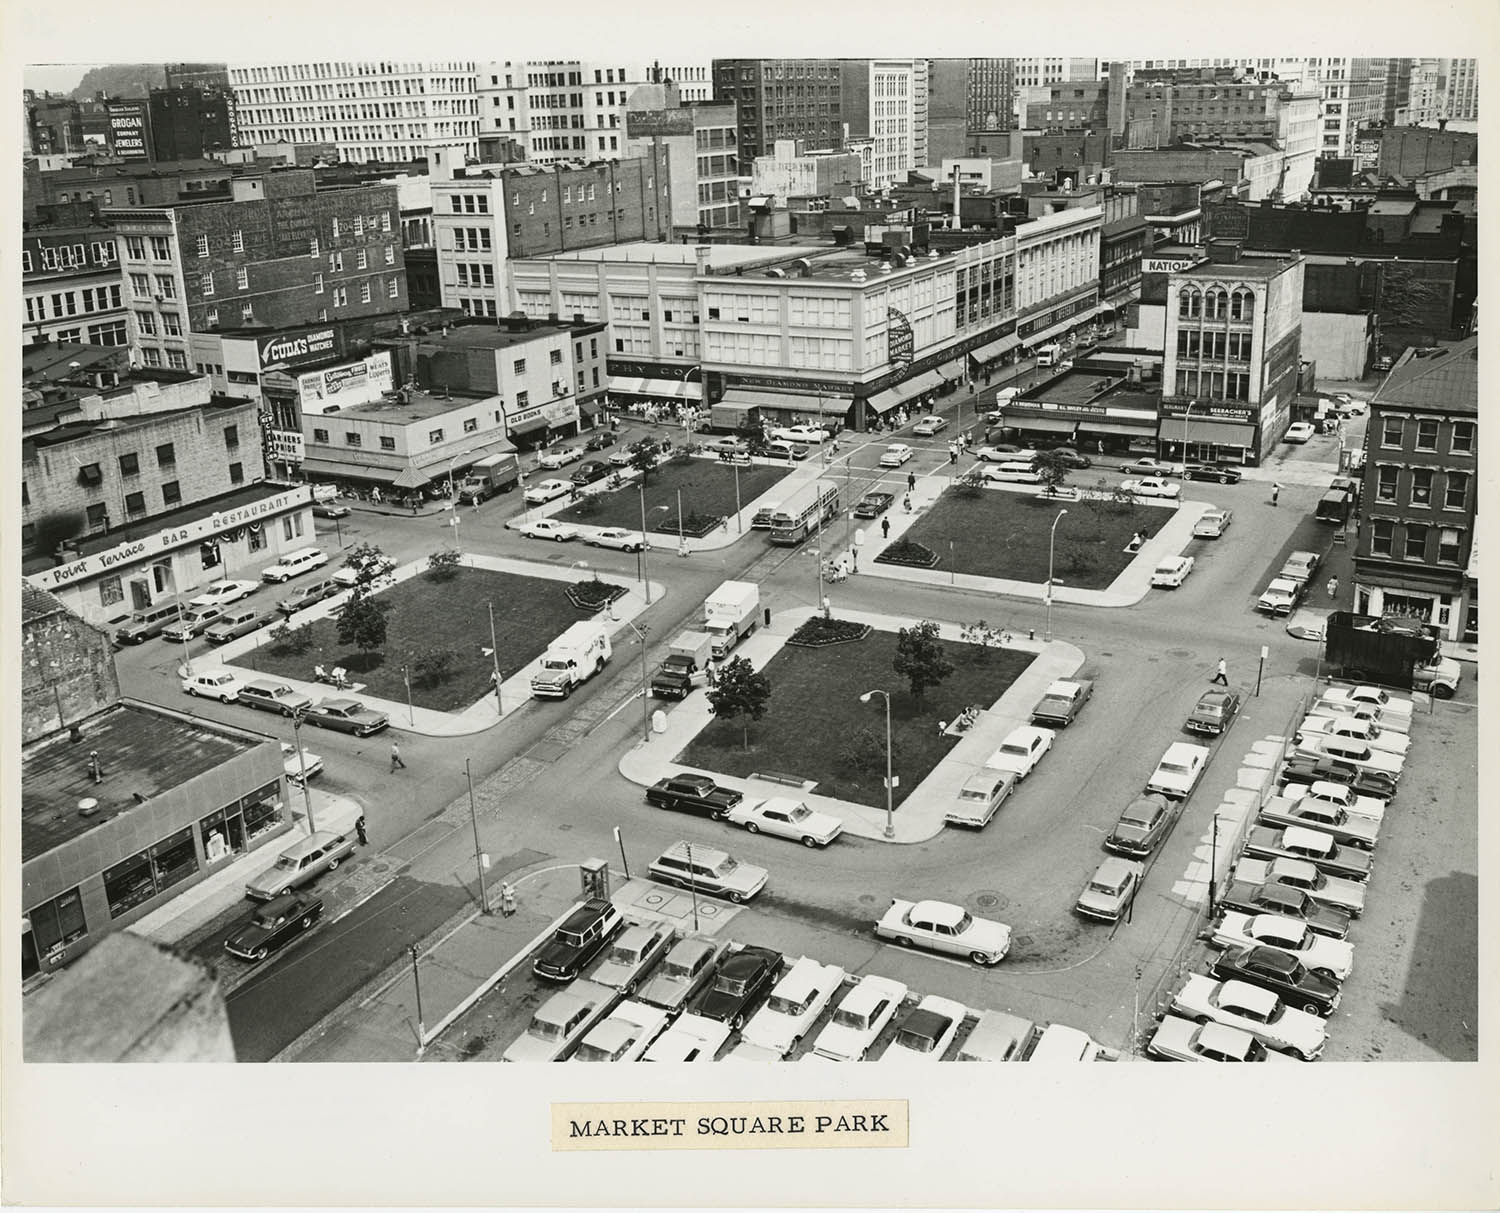 Market Square Park, July 1964. The footprint of the old Diamond Market can still clearly be seen in the park's layout of four separate quadrants. From the Allegheny Conference on Community Development photographs, MSP 285, Detre Market Square Park, July 1964.